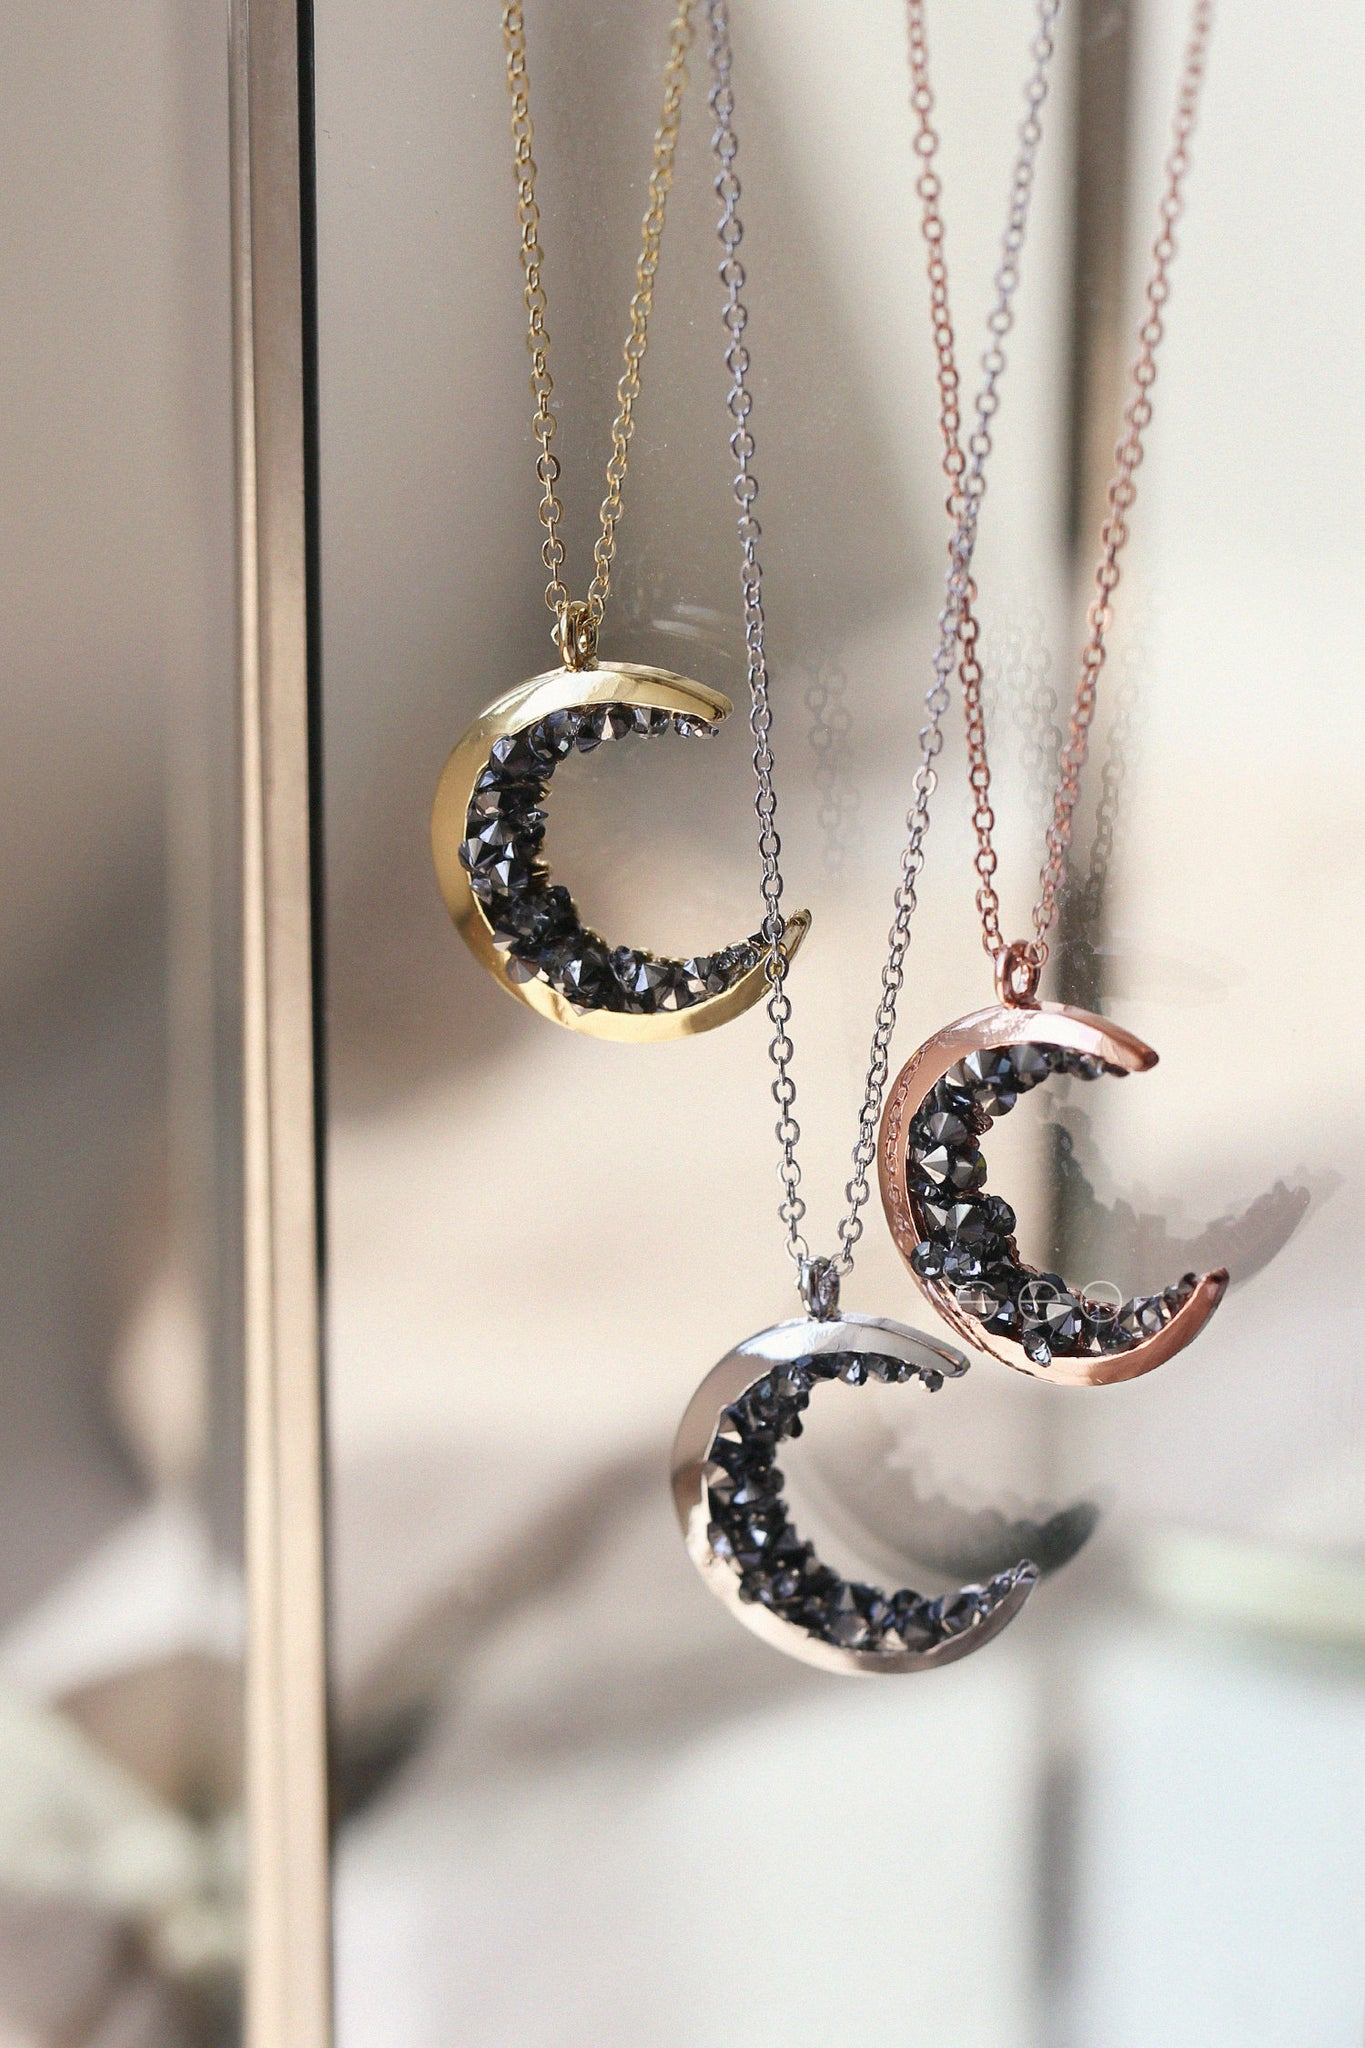 The Crescent Moon Necklace - The Perfect Valentine's Day Gift